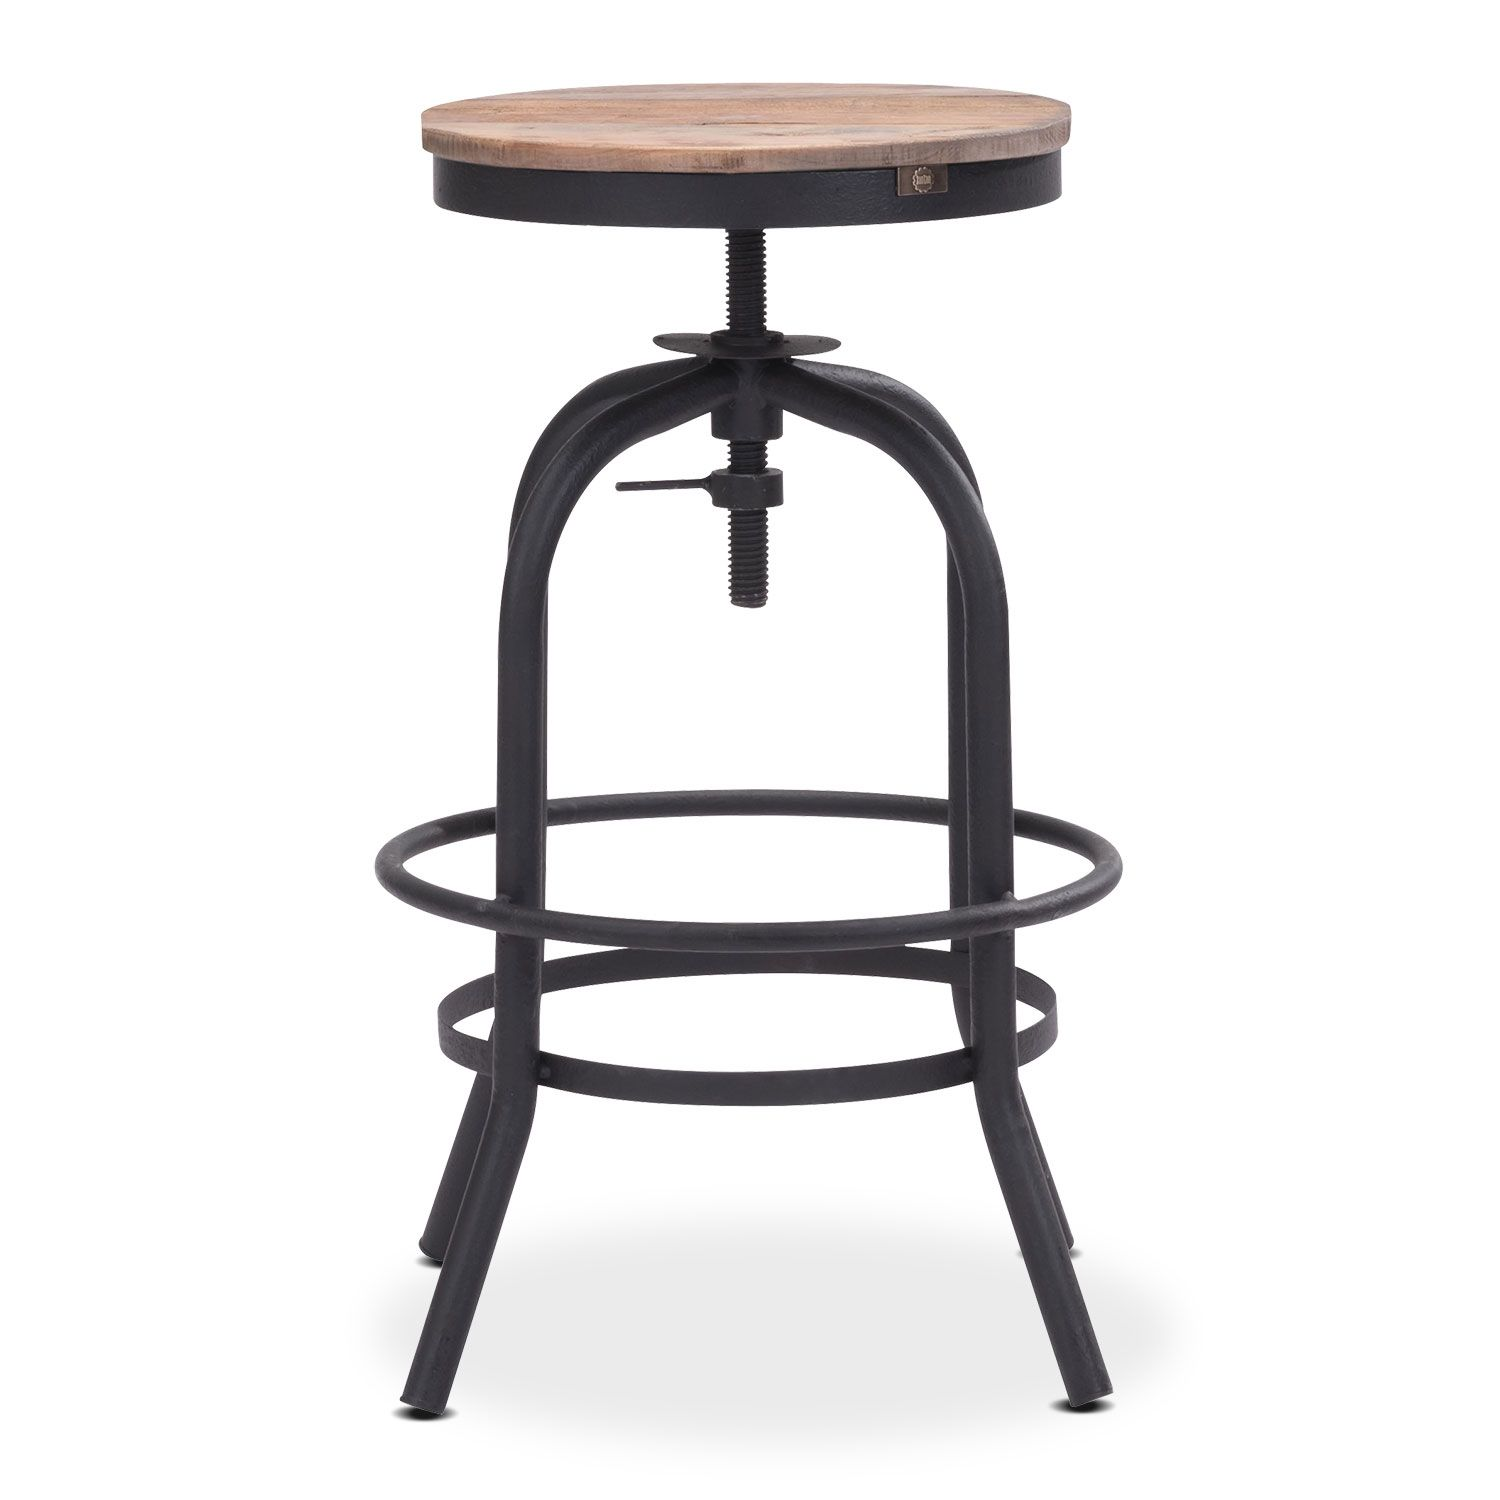 Surprising Elston Adjustable Backless Counter Height Stool Value City Theyellowbook Wood Chair Design Ideas Theyellowbookinfo